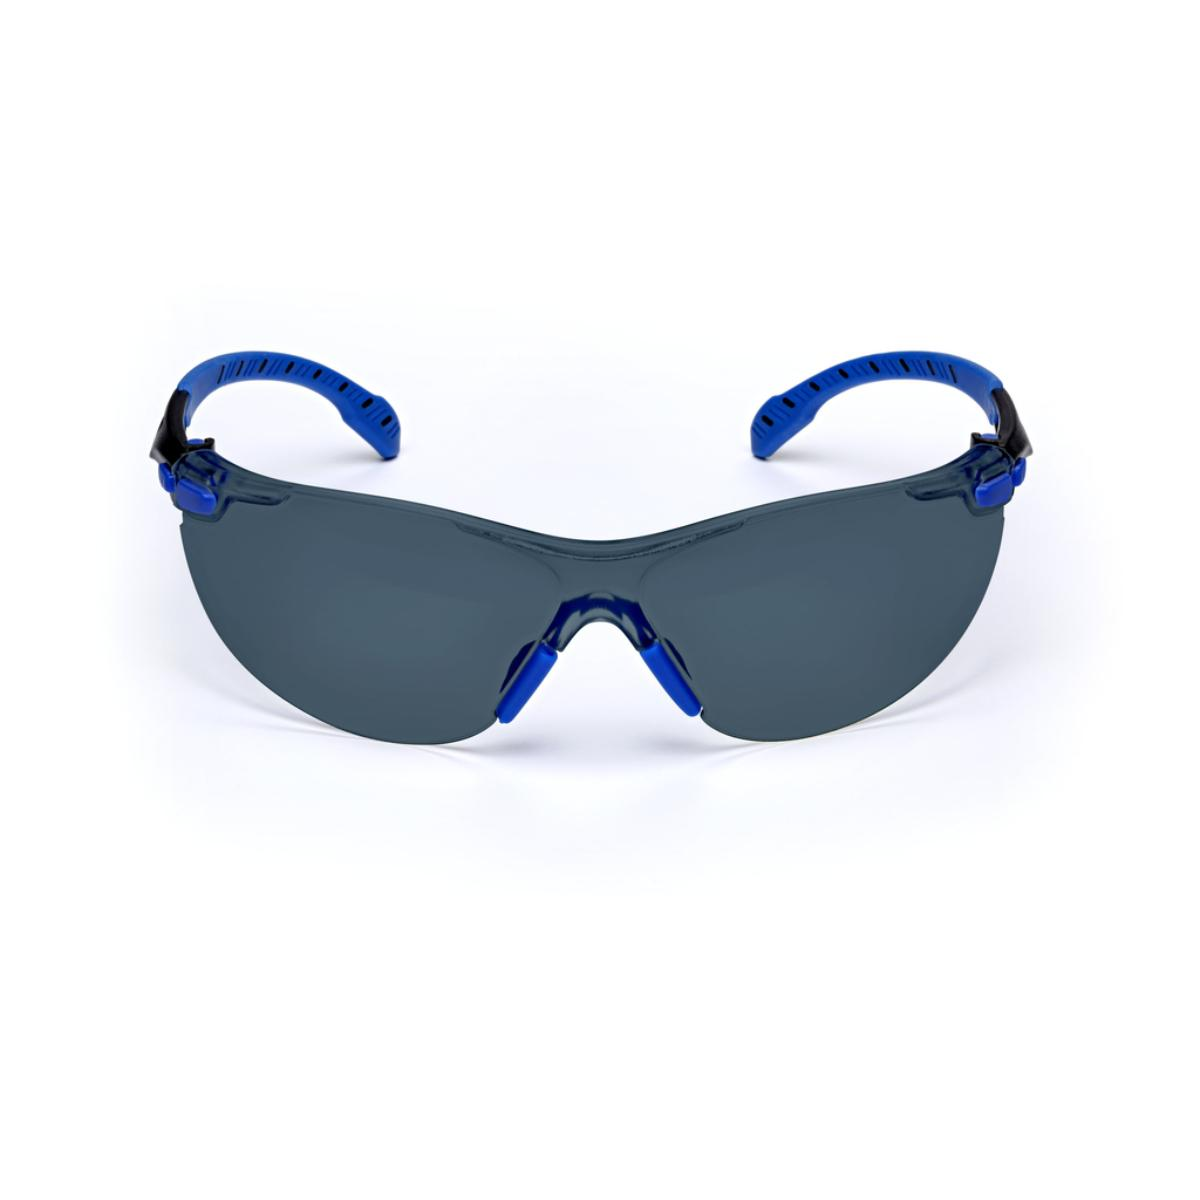 "3Mâ""¢ Solusâ""¢ 1000-Series S1102SGAF, Black/Blue, Grey Scotchgardâ""¢ Anti-fog Lens"